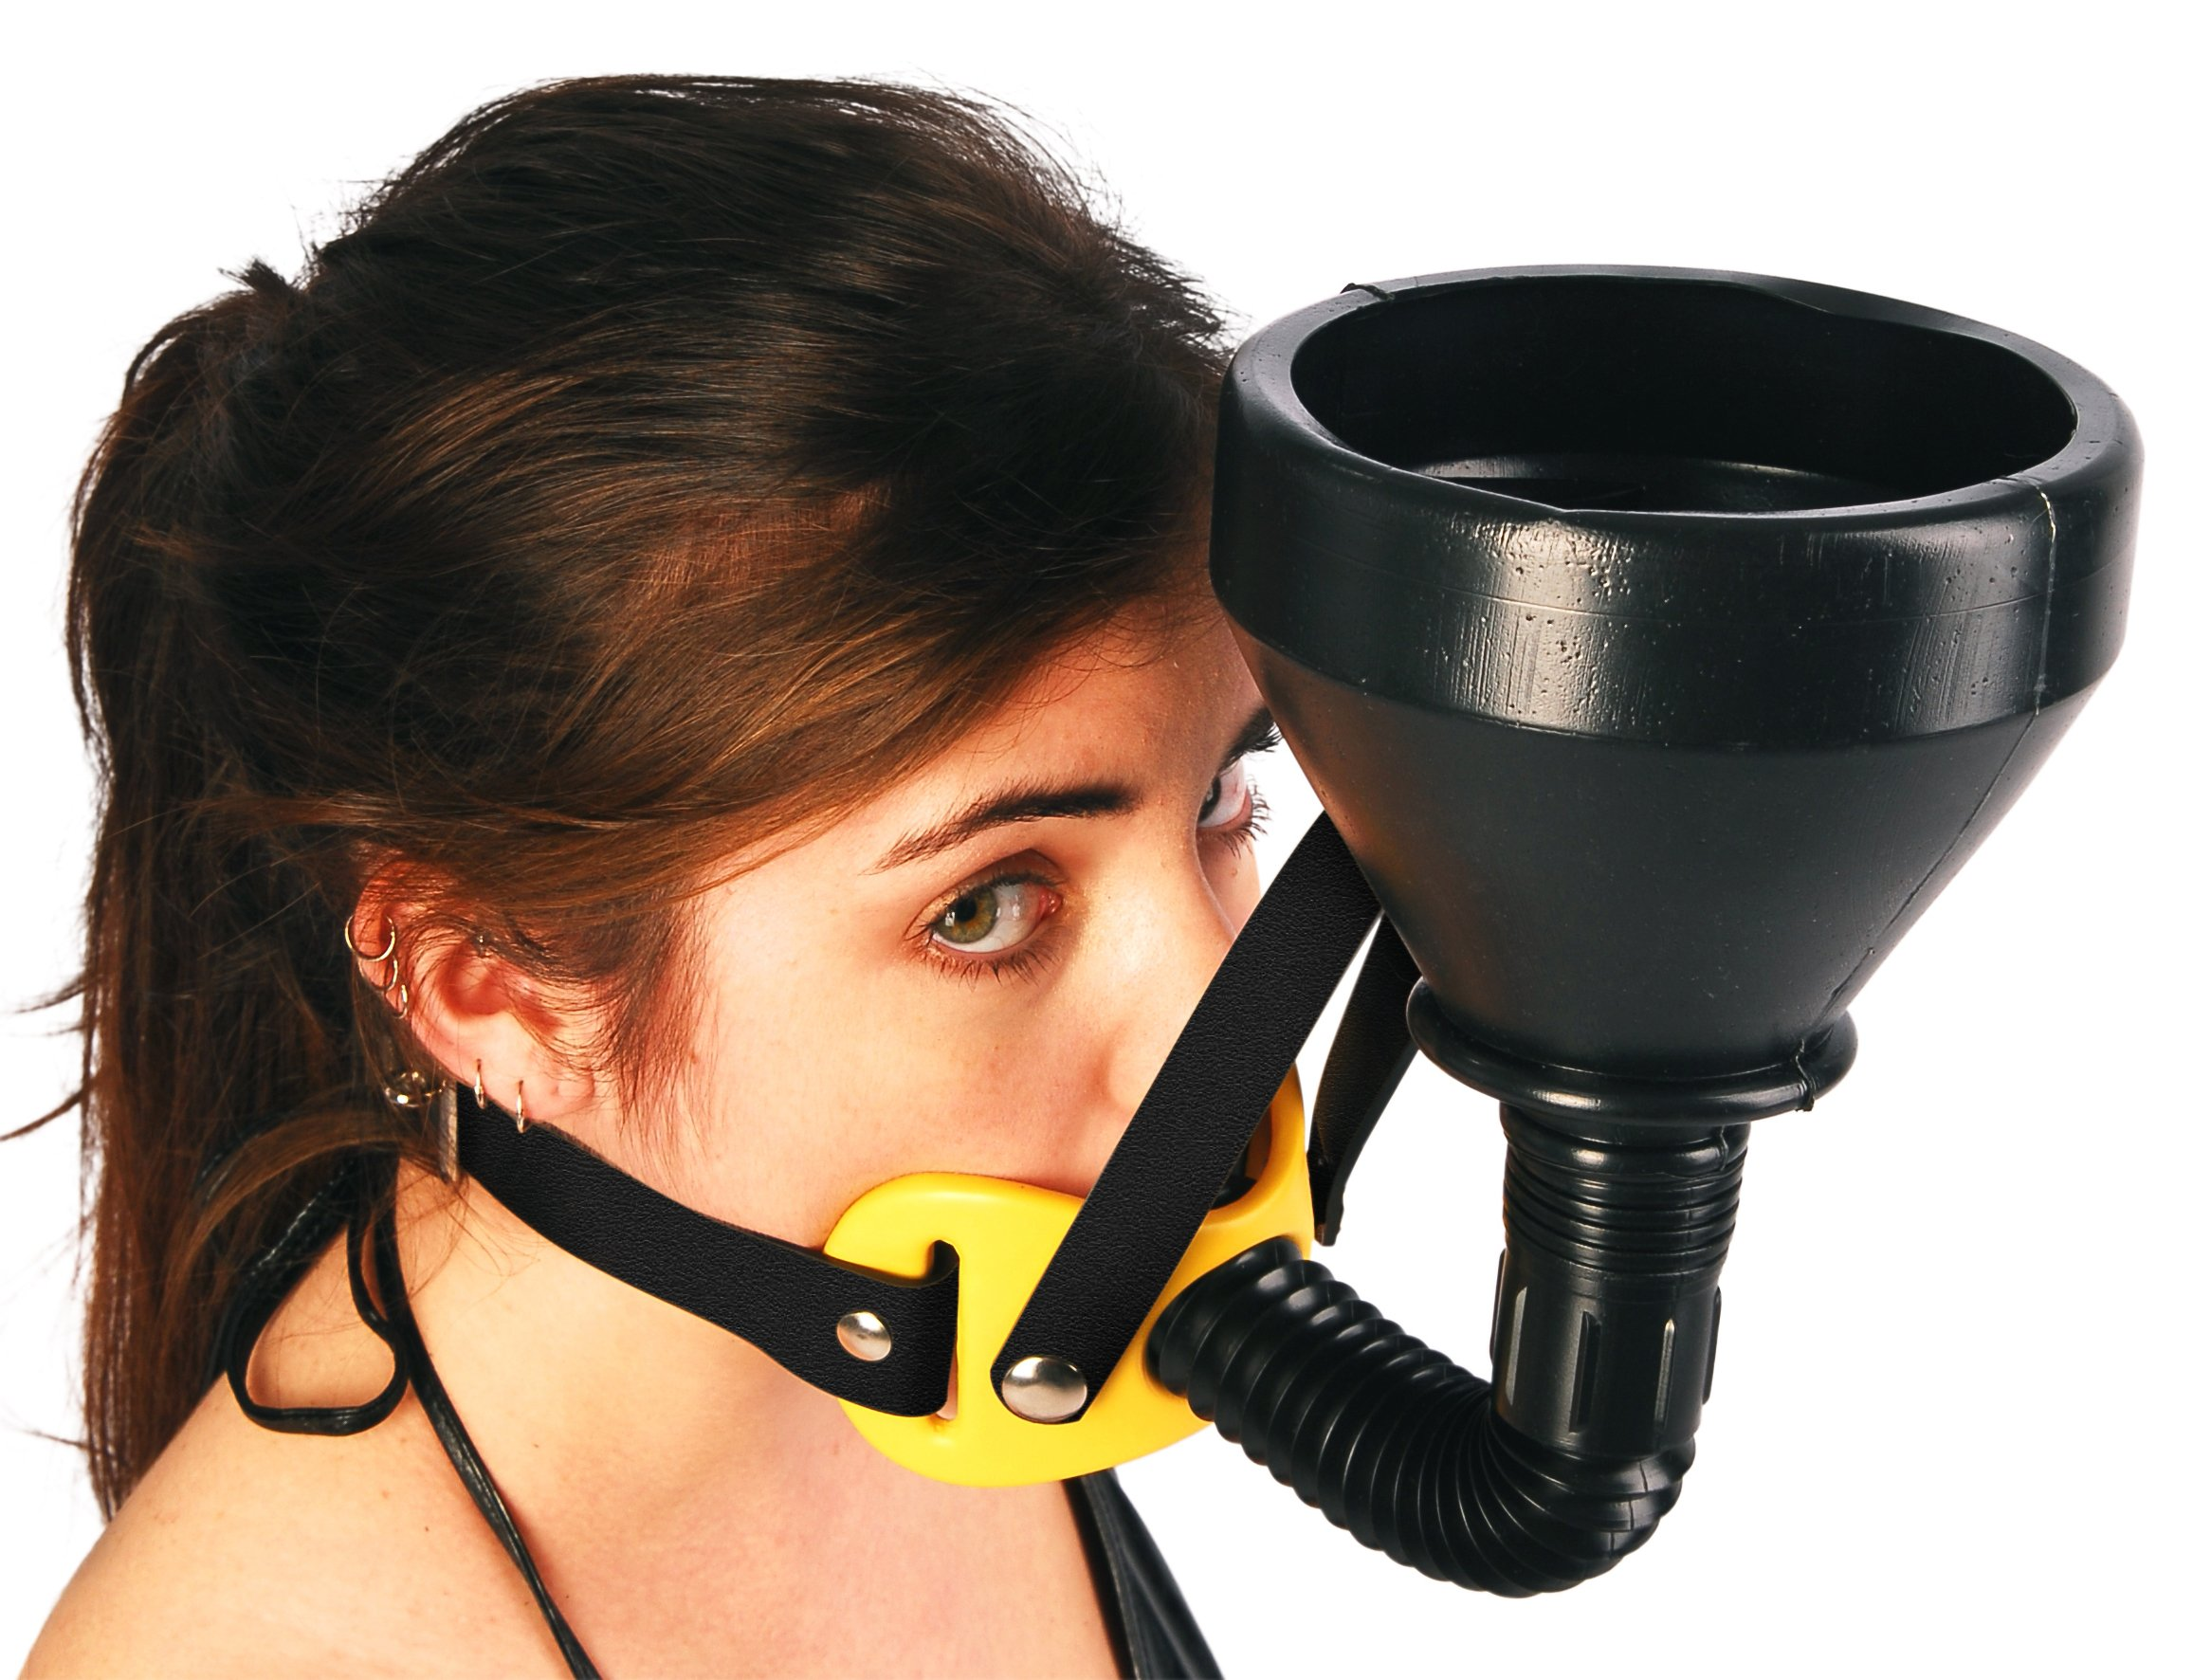 The Original - Funnel GagTM - Latrine - Beer Bong (Black Leather - Yellow Coated Pad) by Midnight Blue's